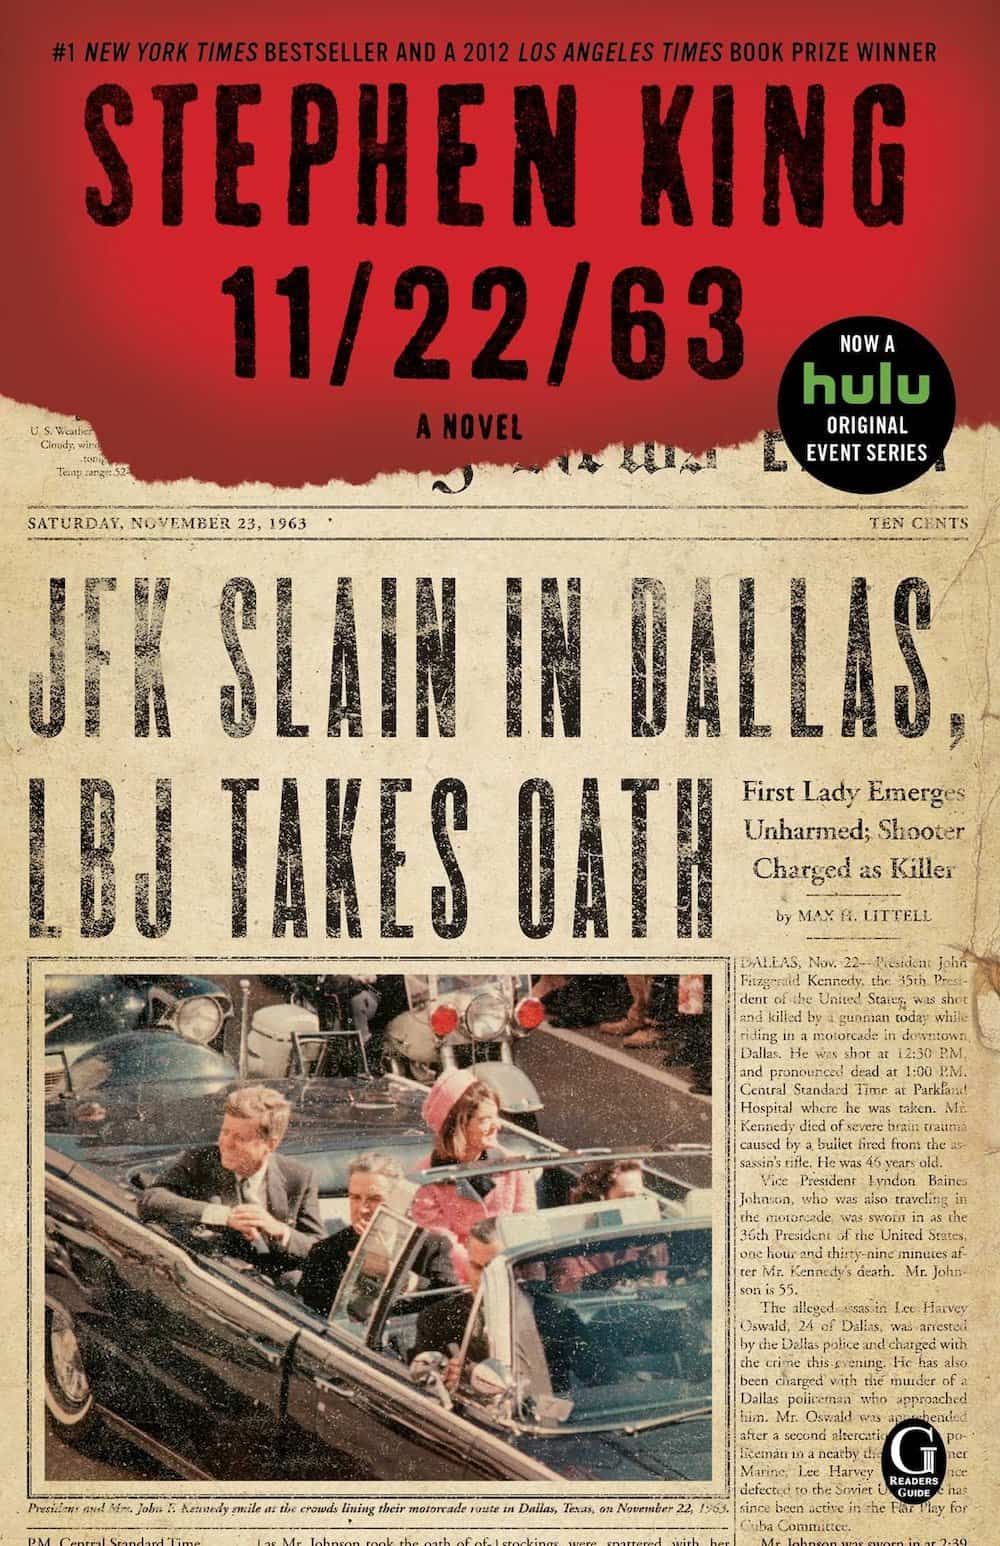 The cover of 11/22/63